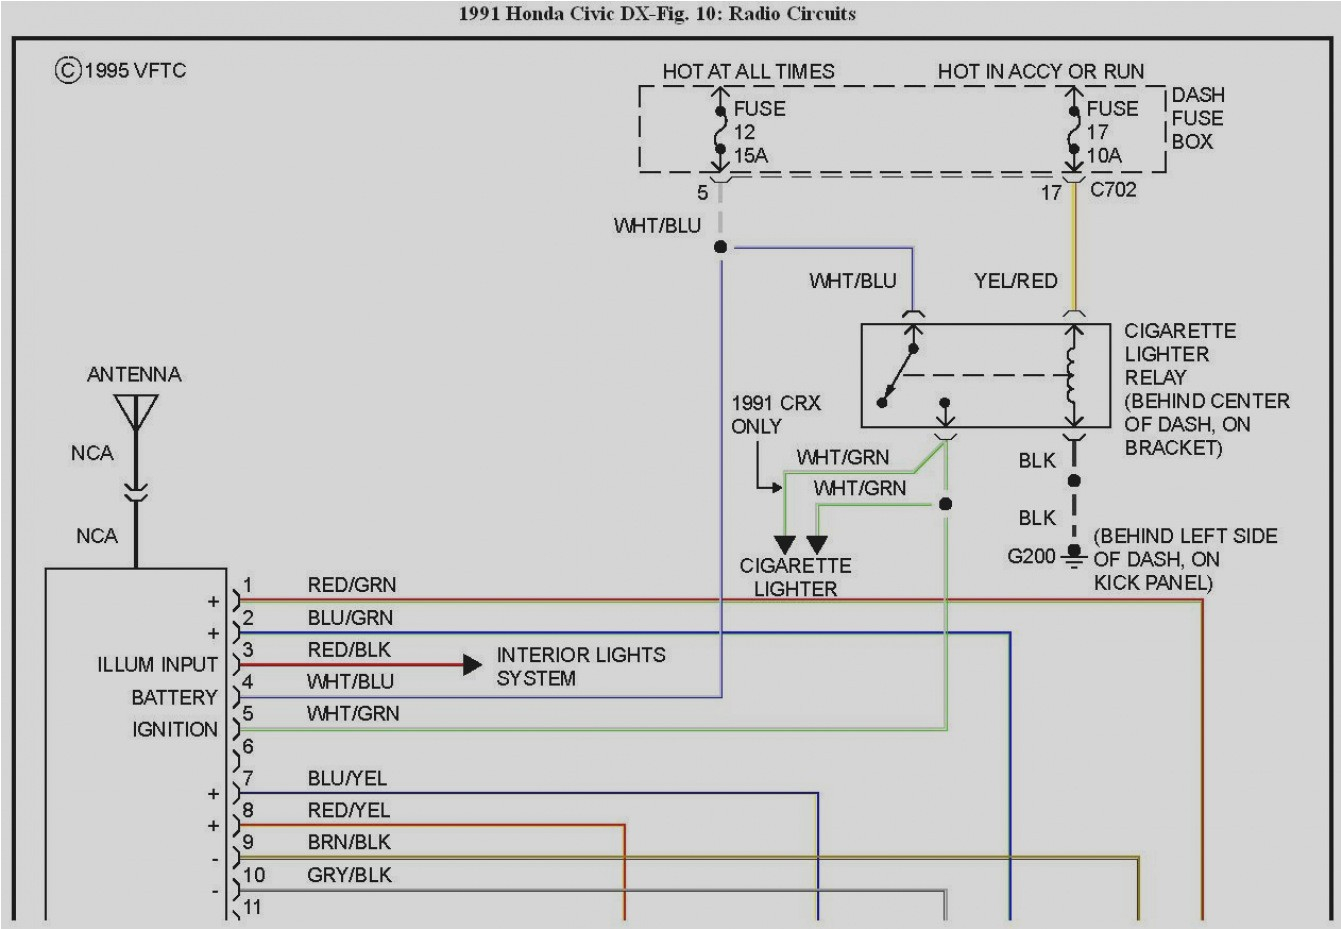 2009 honda civic radio wiring wiring diagram load 2009 civic stereo wiring diagram 2009 civic wiring diagram